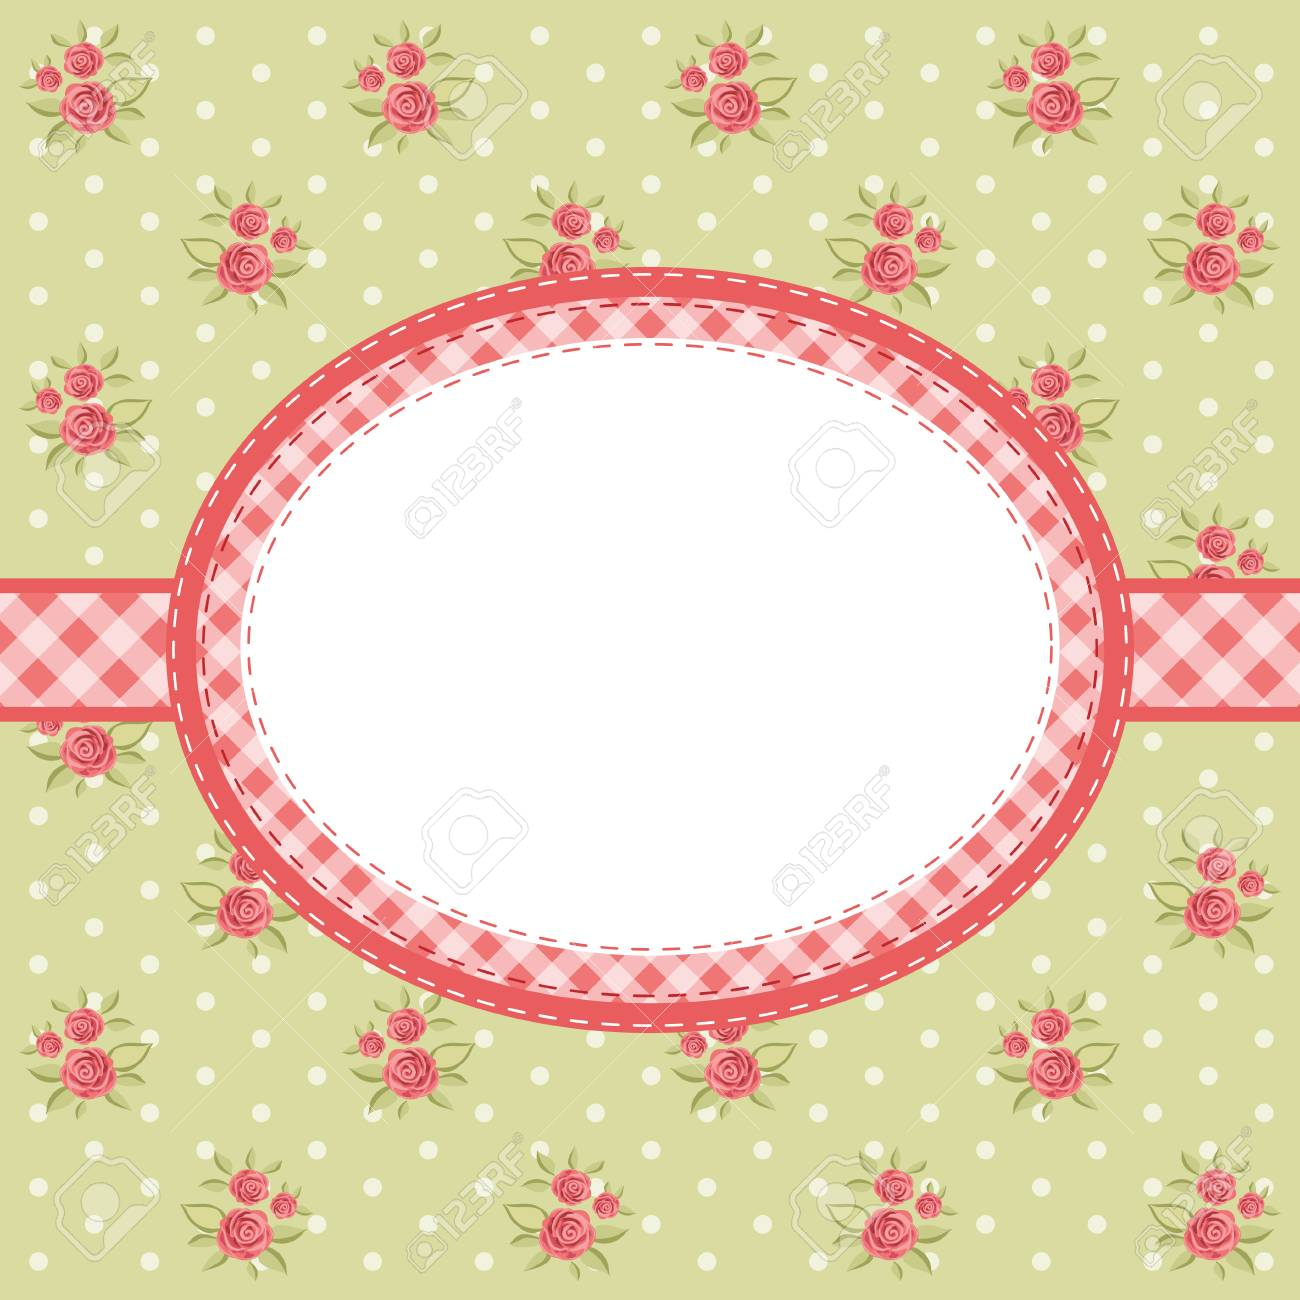 Retro Floral Oval Frame With Roses In Shabby Chic Style For Your ...